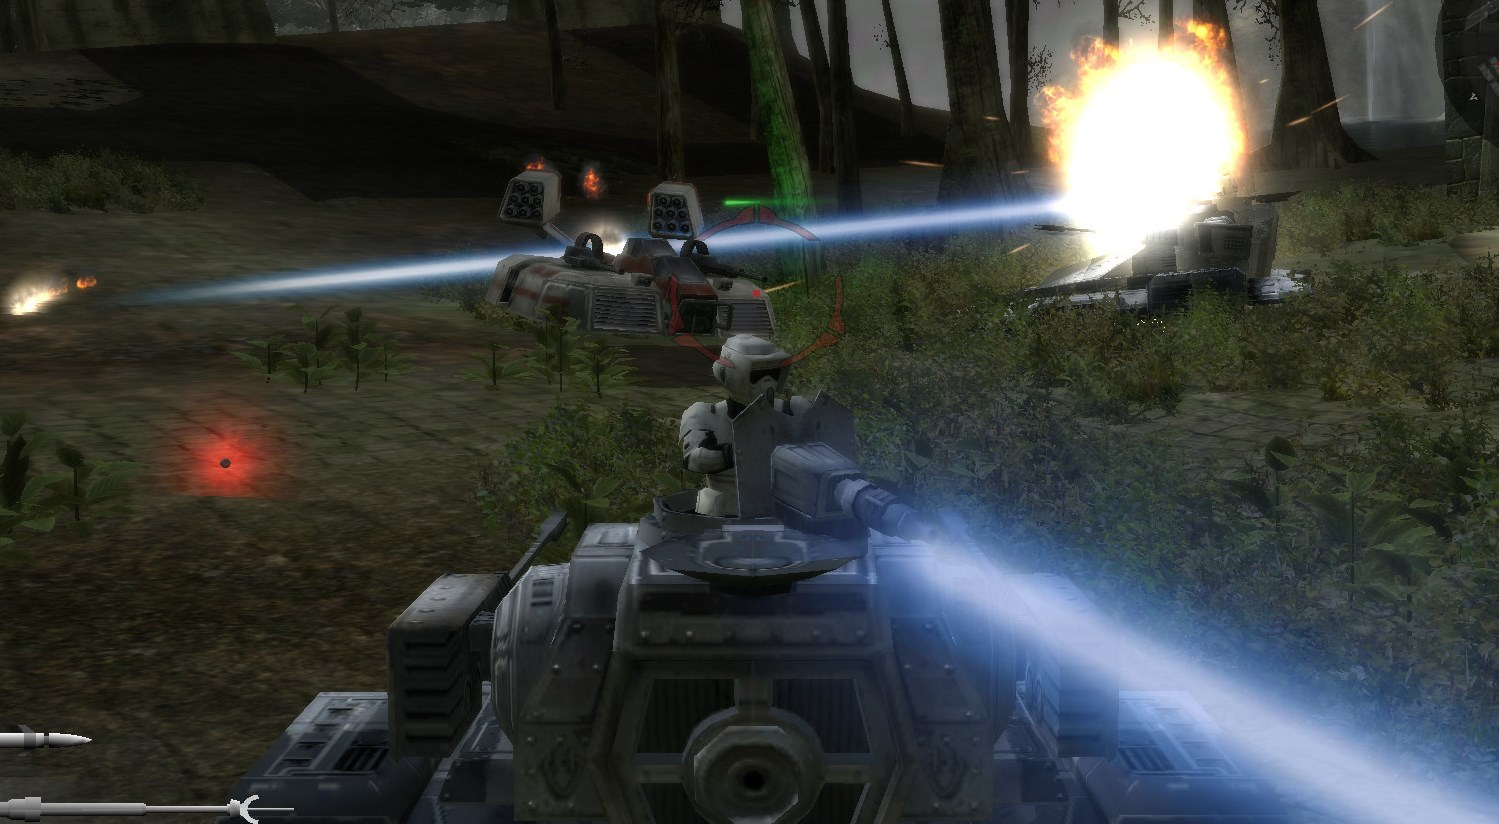 GOG releases another multiplayer update for the original Star Wars